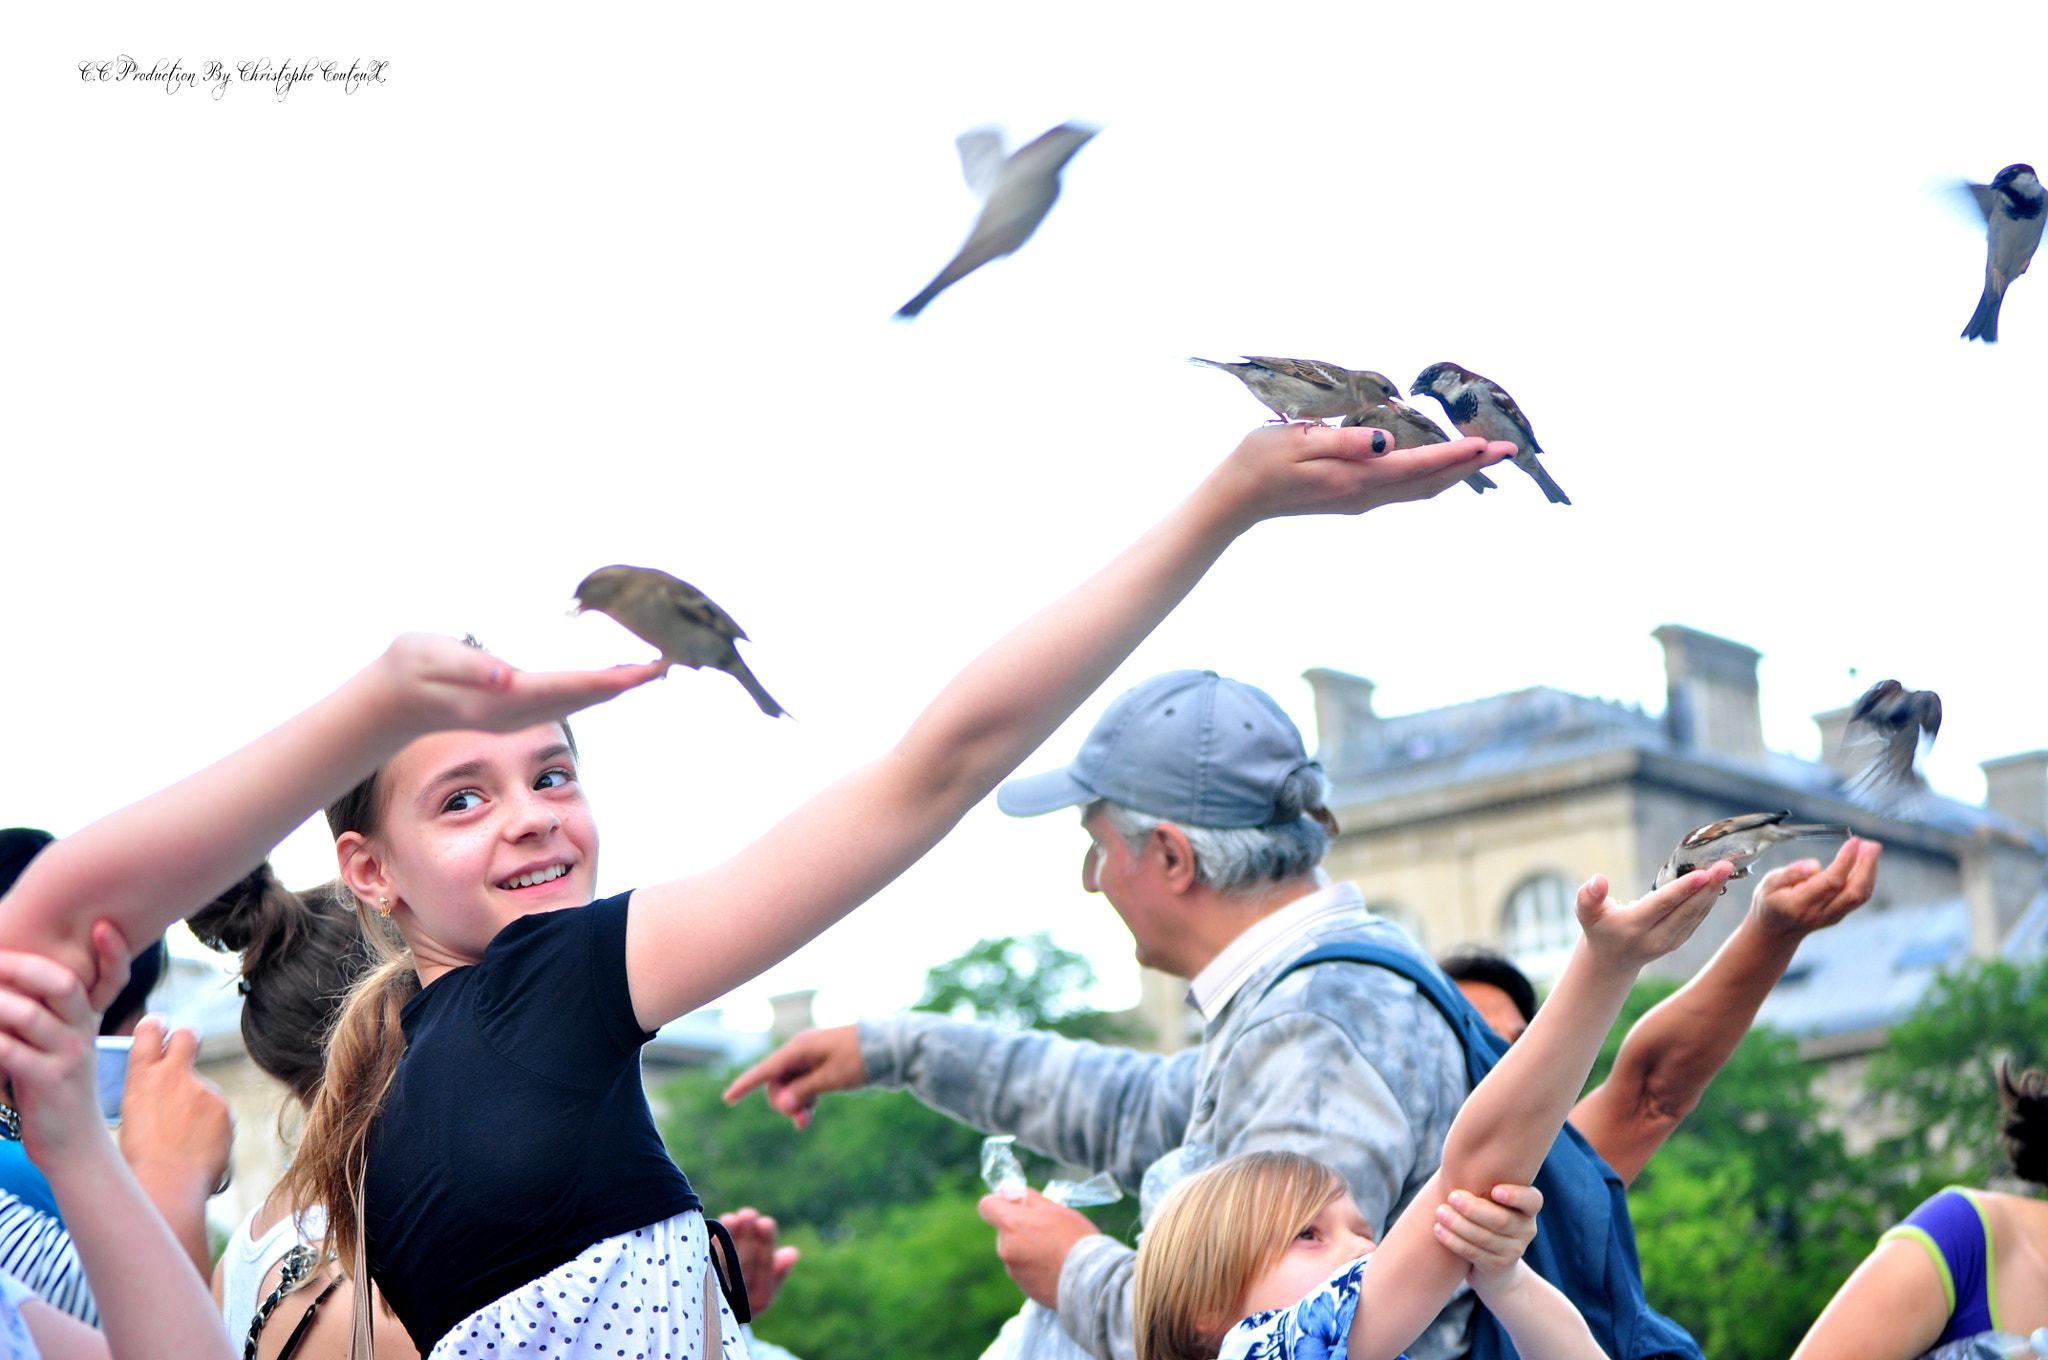 Photograph birds and childhood by C.C Production By Christophe Couteux Christophe Couteux on 500px